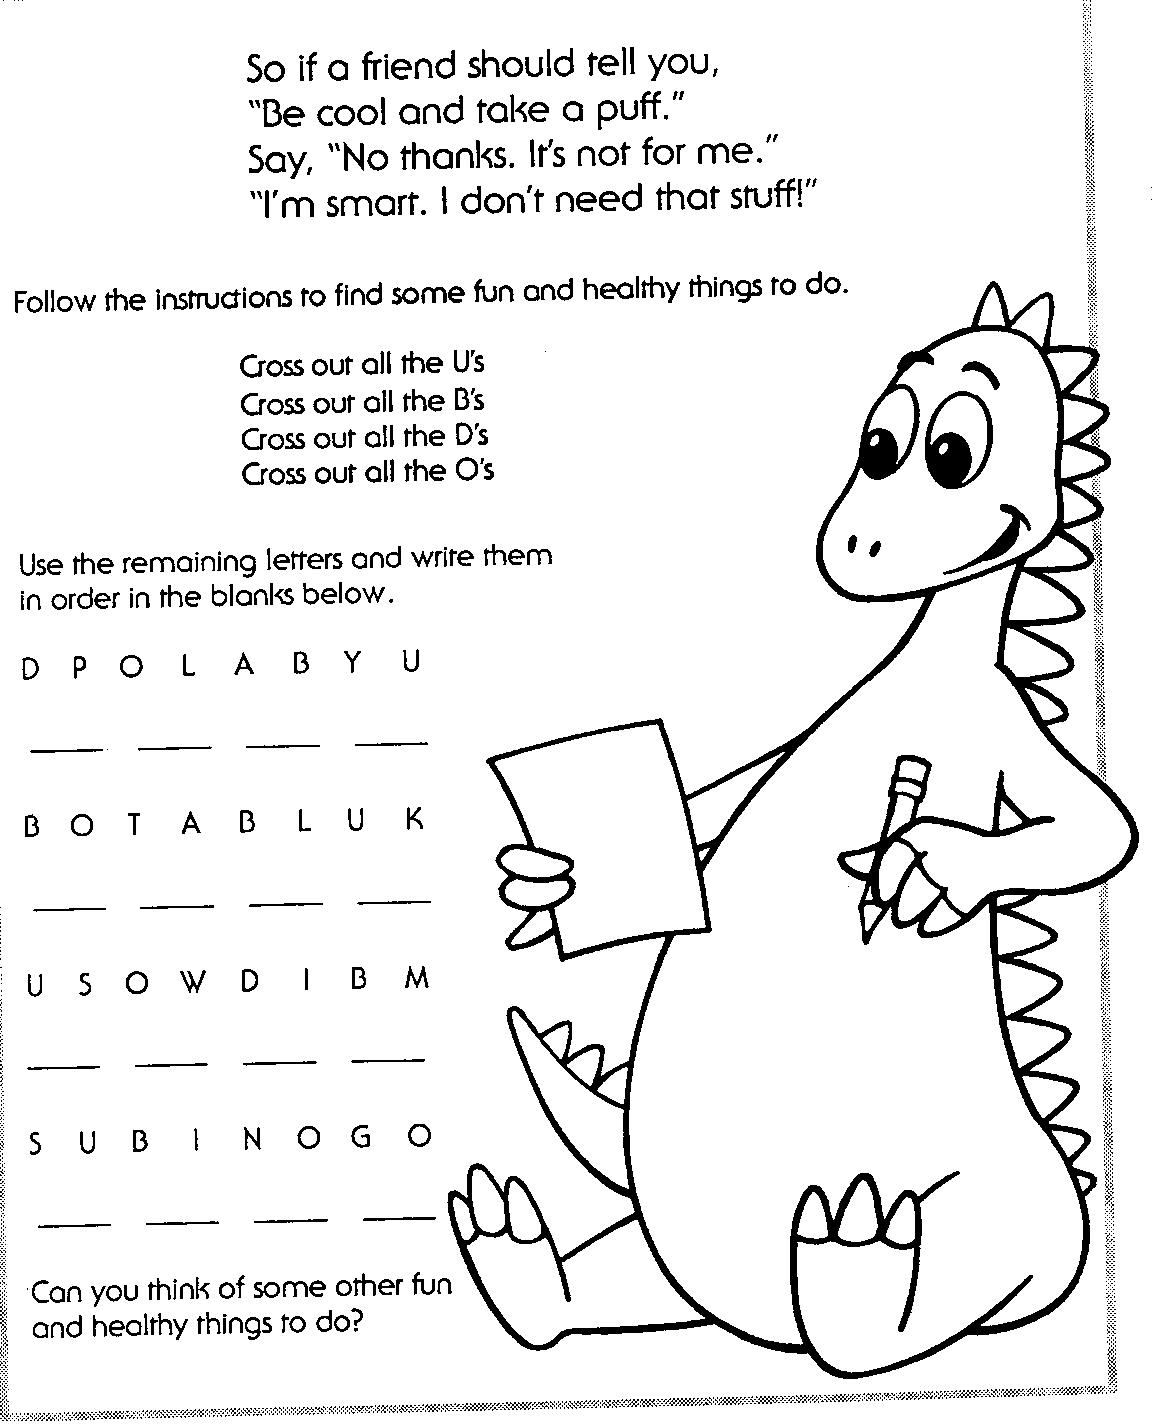 Say No To Drugs Coloring Pages At Getdrawings